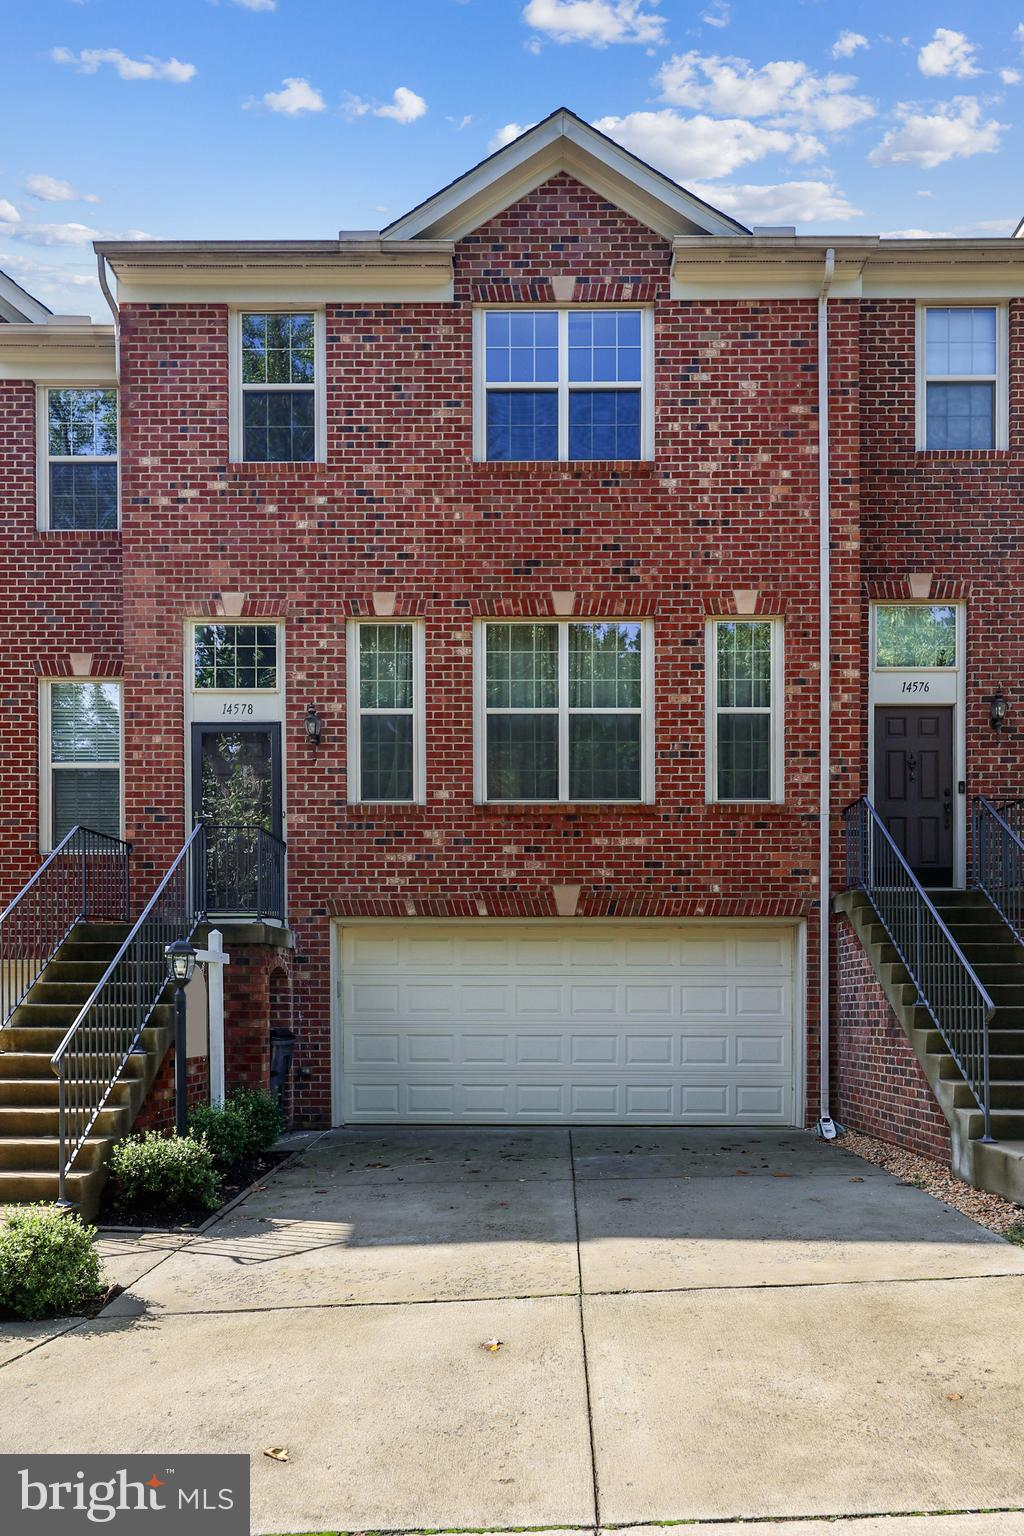 Great new price on spacious, bright and beautiful 9 year young  Centreville townhome! This elegant brick front luxury townhome is on a quiet tree lined enclave of only 10  unique homes.  3 finished levels, 2 car garage, every upgrade you  can imagine. Gleaming hardwoods on the main  & upper levels.  Gourmet kitchen with  granite counters and stainless appliances. Sun-drenched breakfast room opens to  custom composite deck backing to trees. Formal dining room and living room separated by two sided gas fireplace. Upper level  master bedroom suite with luxury bath. 2 large extra bedrooms. Lower level walks out to fenced patio. 4th bedroom, recreation room, full bath and brand new carpet ! All of this in a  convenient  Centreville location. Minutes from the Metro Kiss & Ride, 66, Dulles Airport and Manassas Battlefield Park. Great school pyramid!